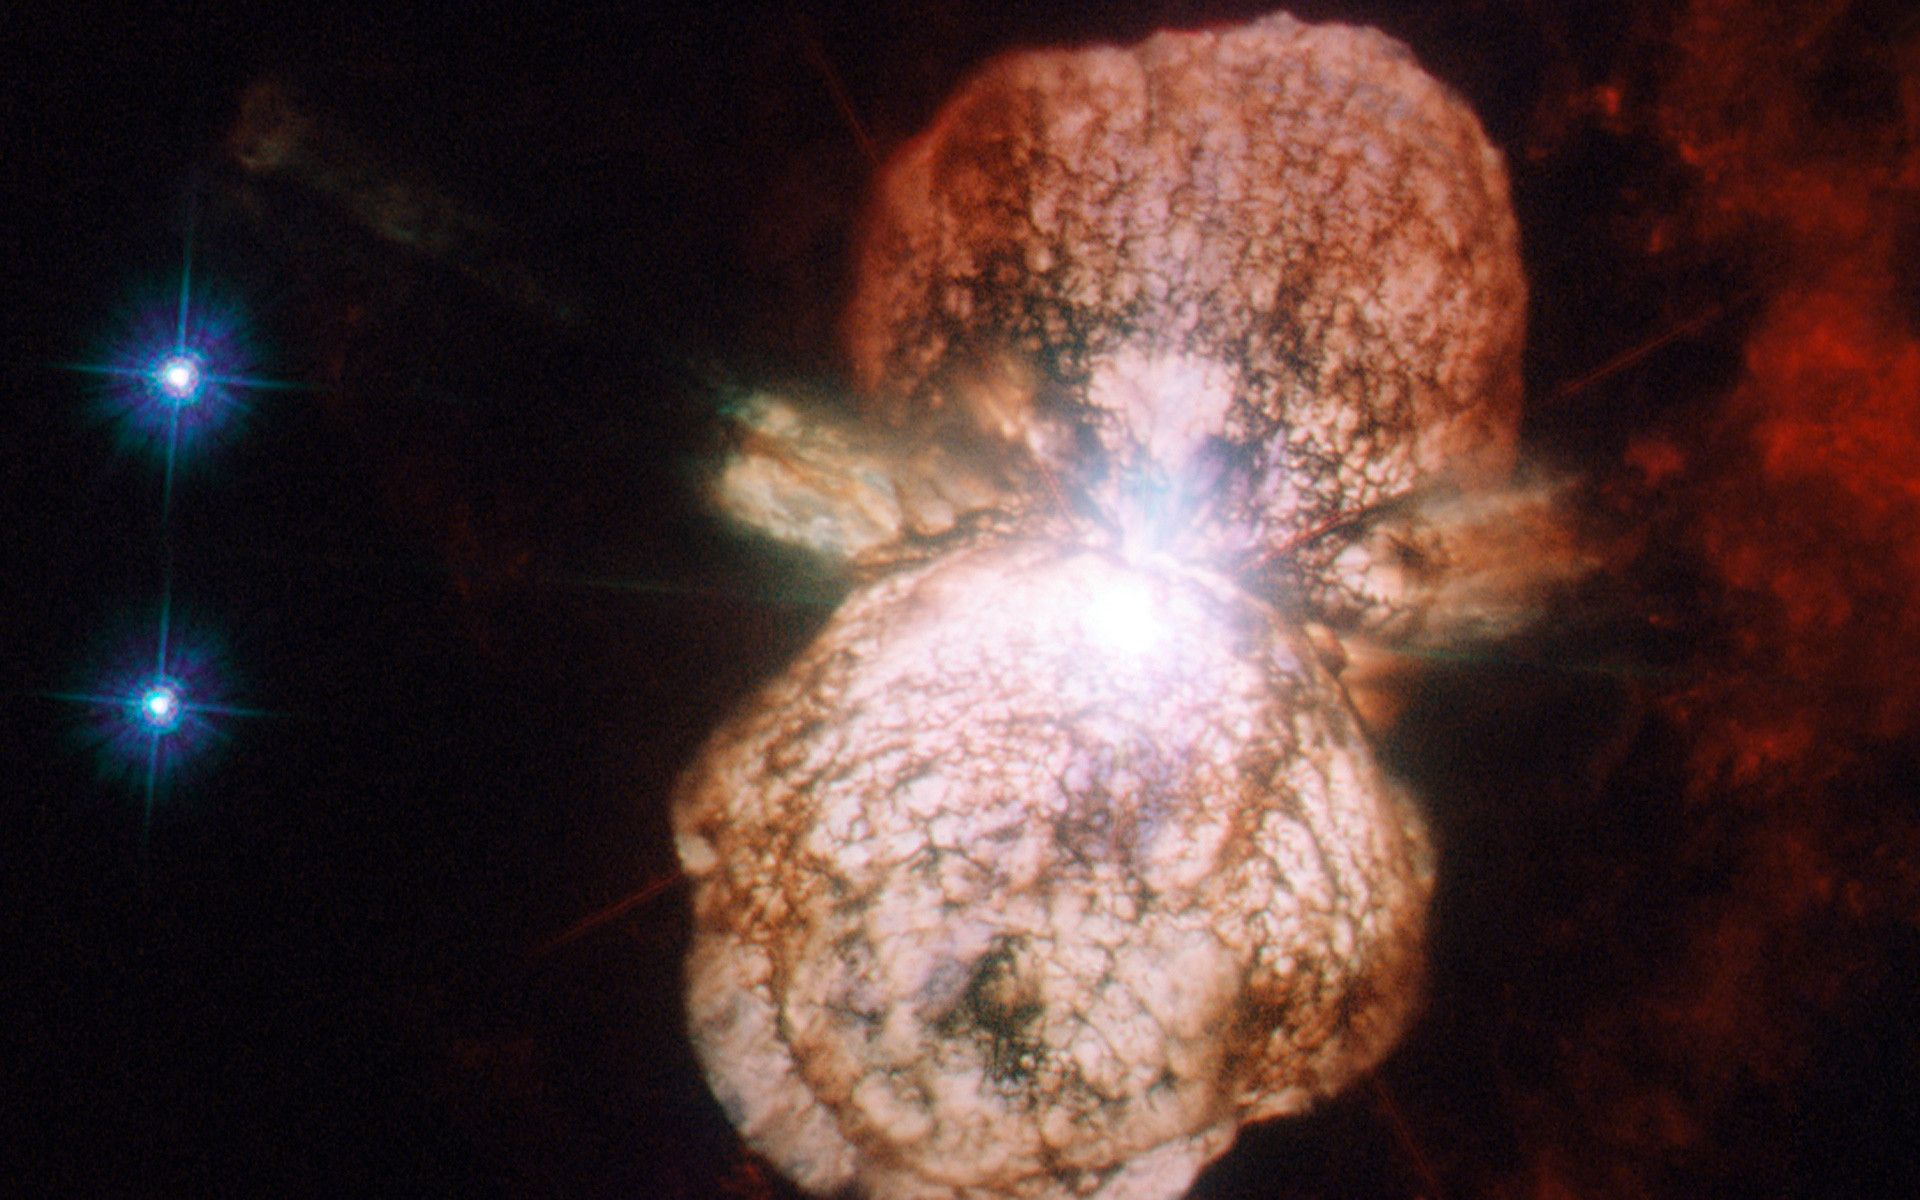 This Is An Actual Photograph Of A Star Going Supernova Taken By